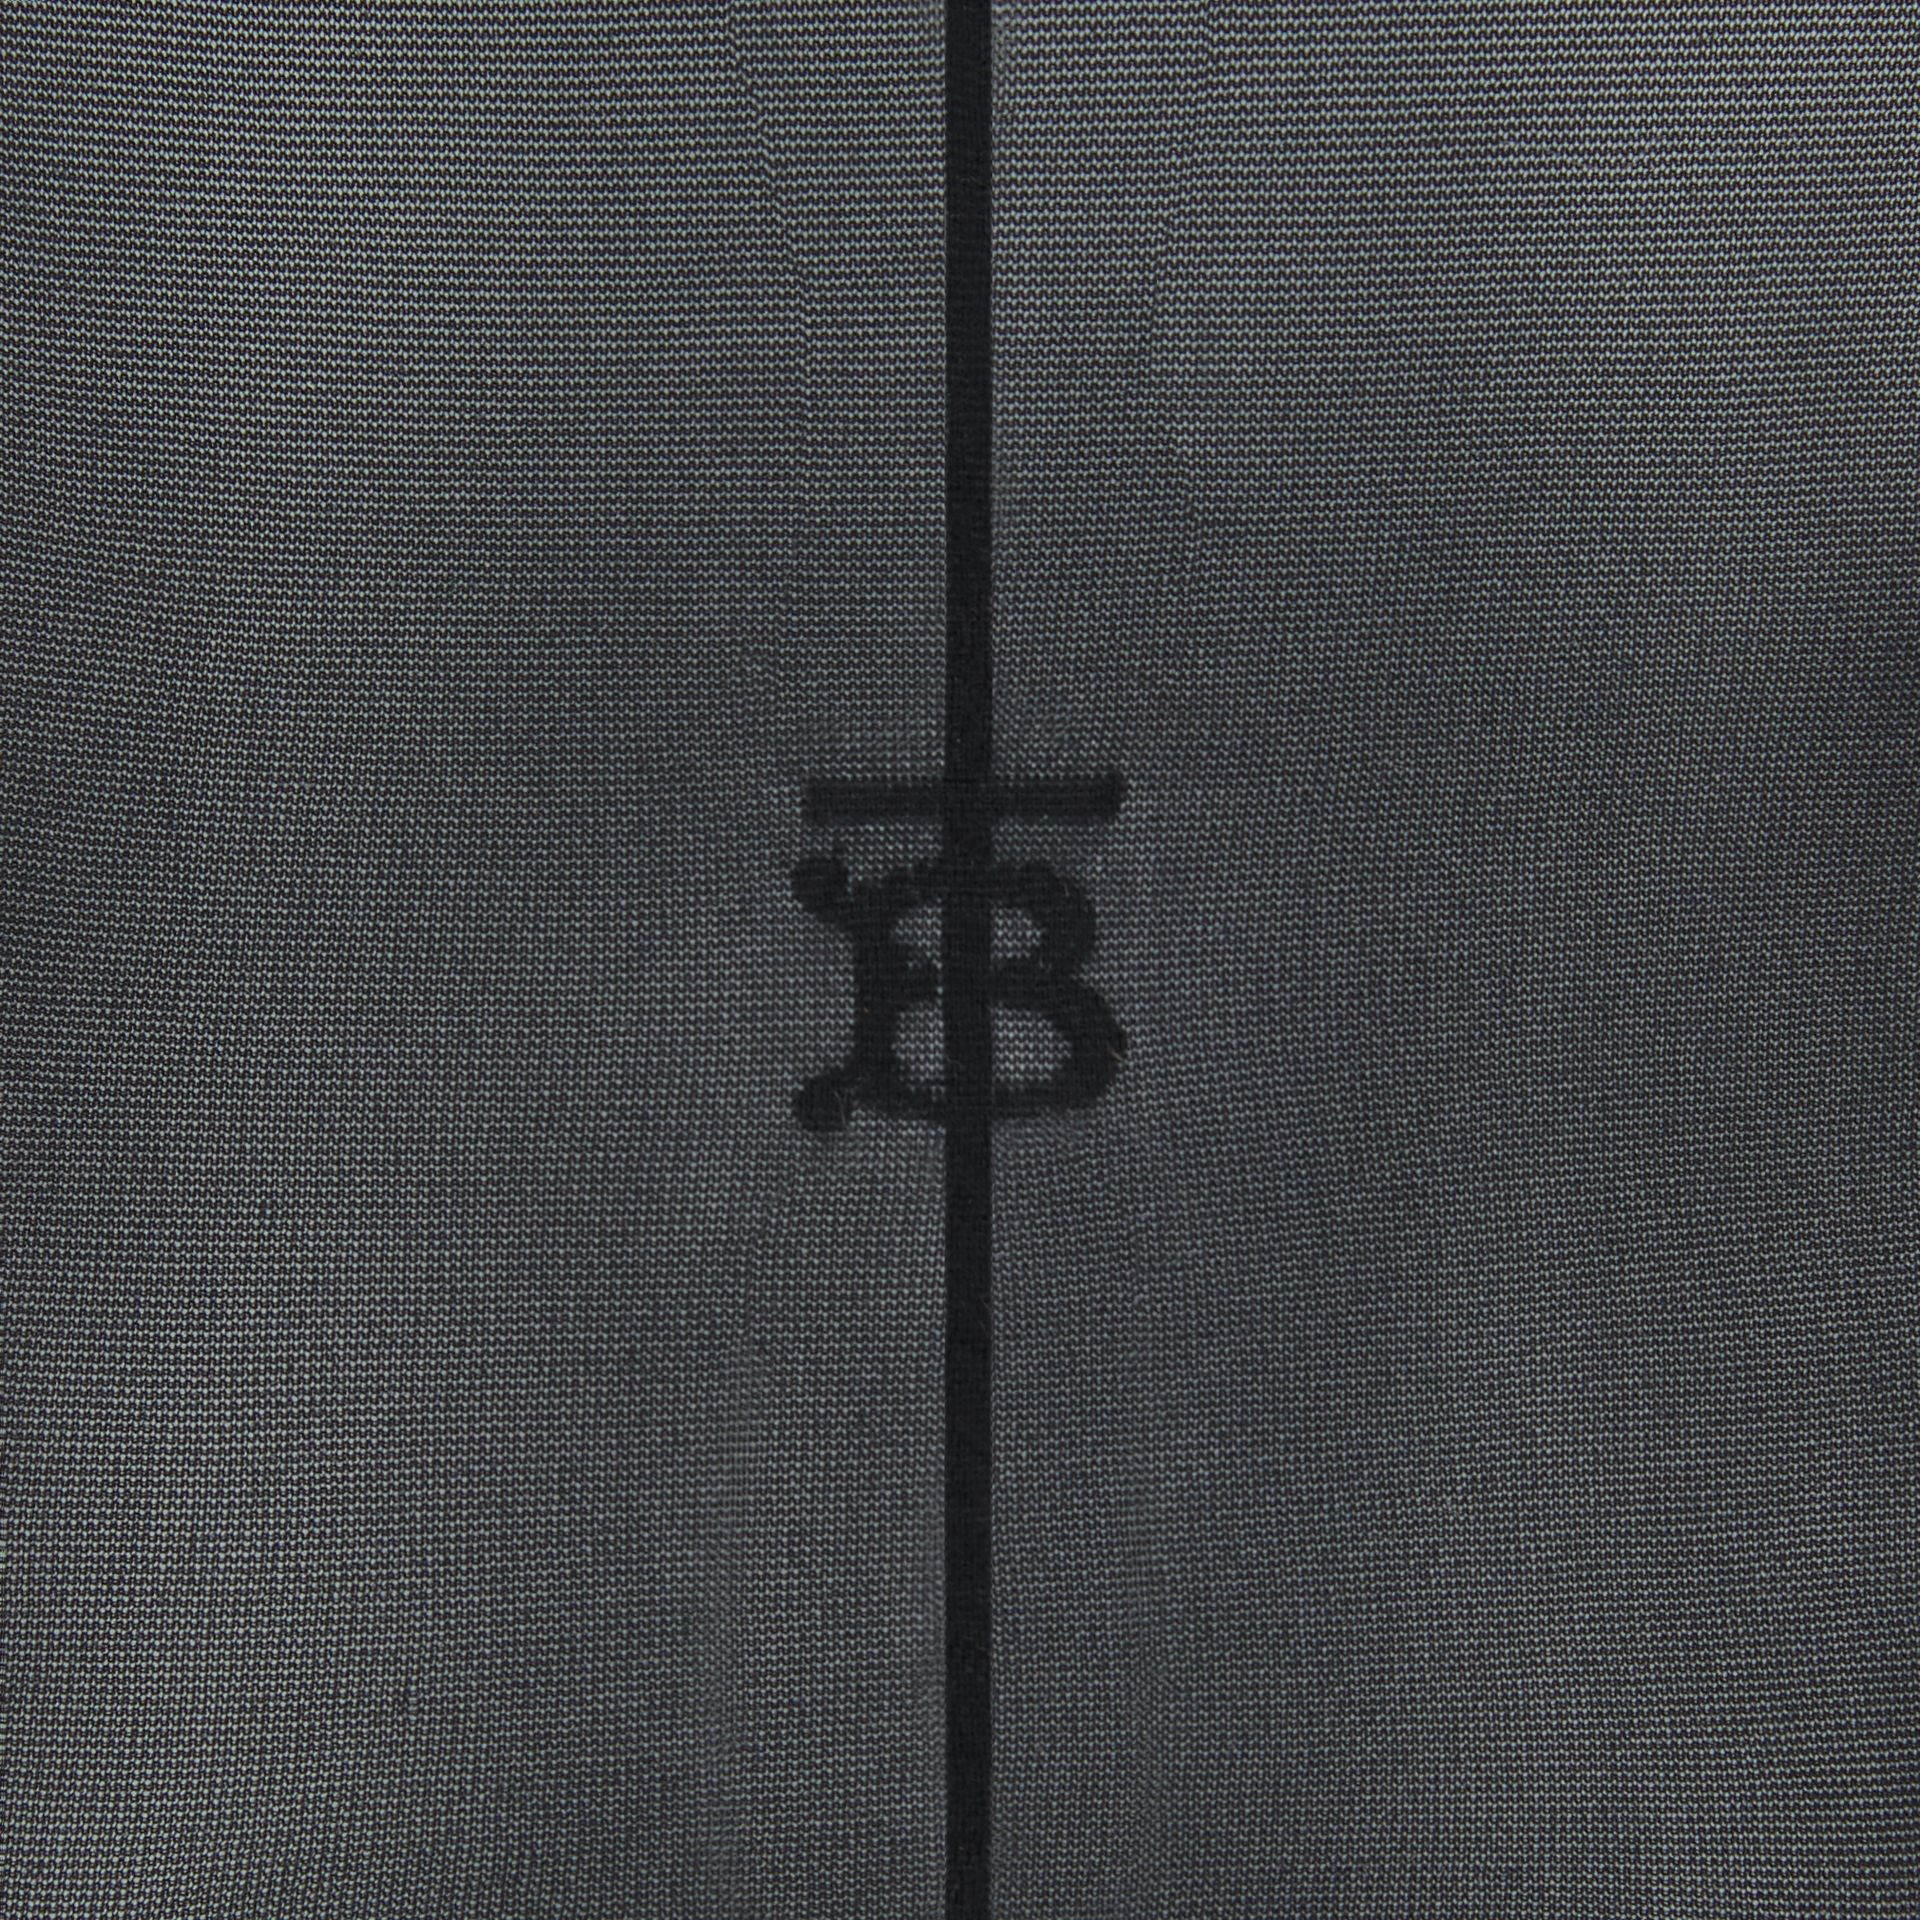 Monogram Motif Seamed Tights in Black - Women | Burberry Australia - gallery image 2